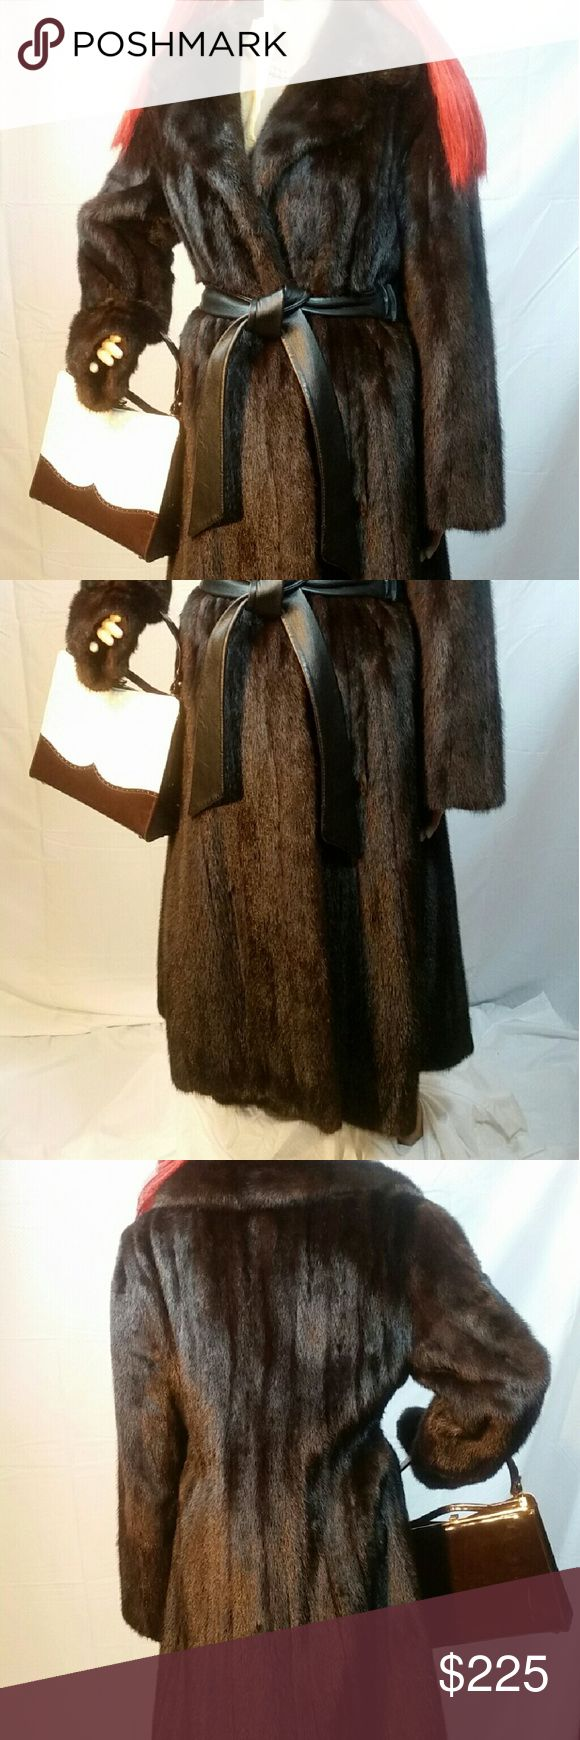 Black Mink Coat Full Length Size M CUSTOM MADE This beautiful black custom-made full length mink coat features a leather belt with elastic in the back. There is very little to any wear on this coat. We will go over it and make sure there are no loose threads or other flaws and will fix them before shipment. This coat is not a vintage coat. There are no antique musty smells. Measurements shoulders 17 collar2hem 45 bust 41 hips 43 sleeve 21.5 sweep 74. PRICE IS FIRM. NO TRADES. FANCY THAT…